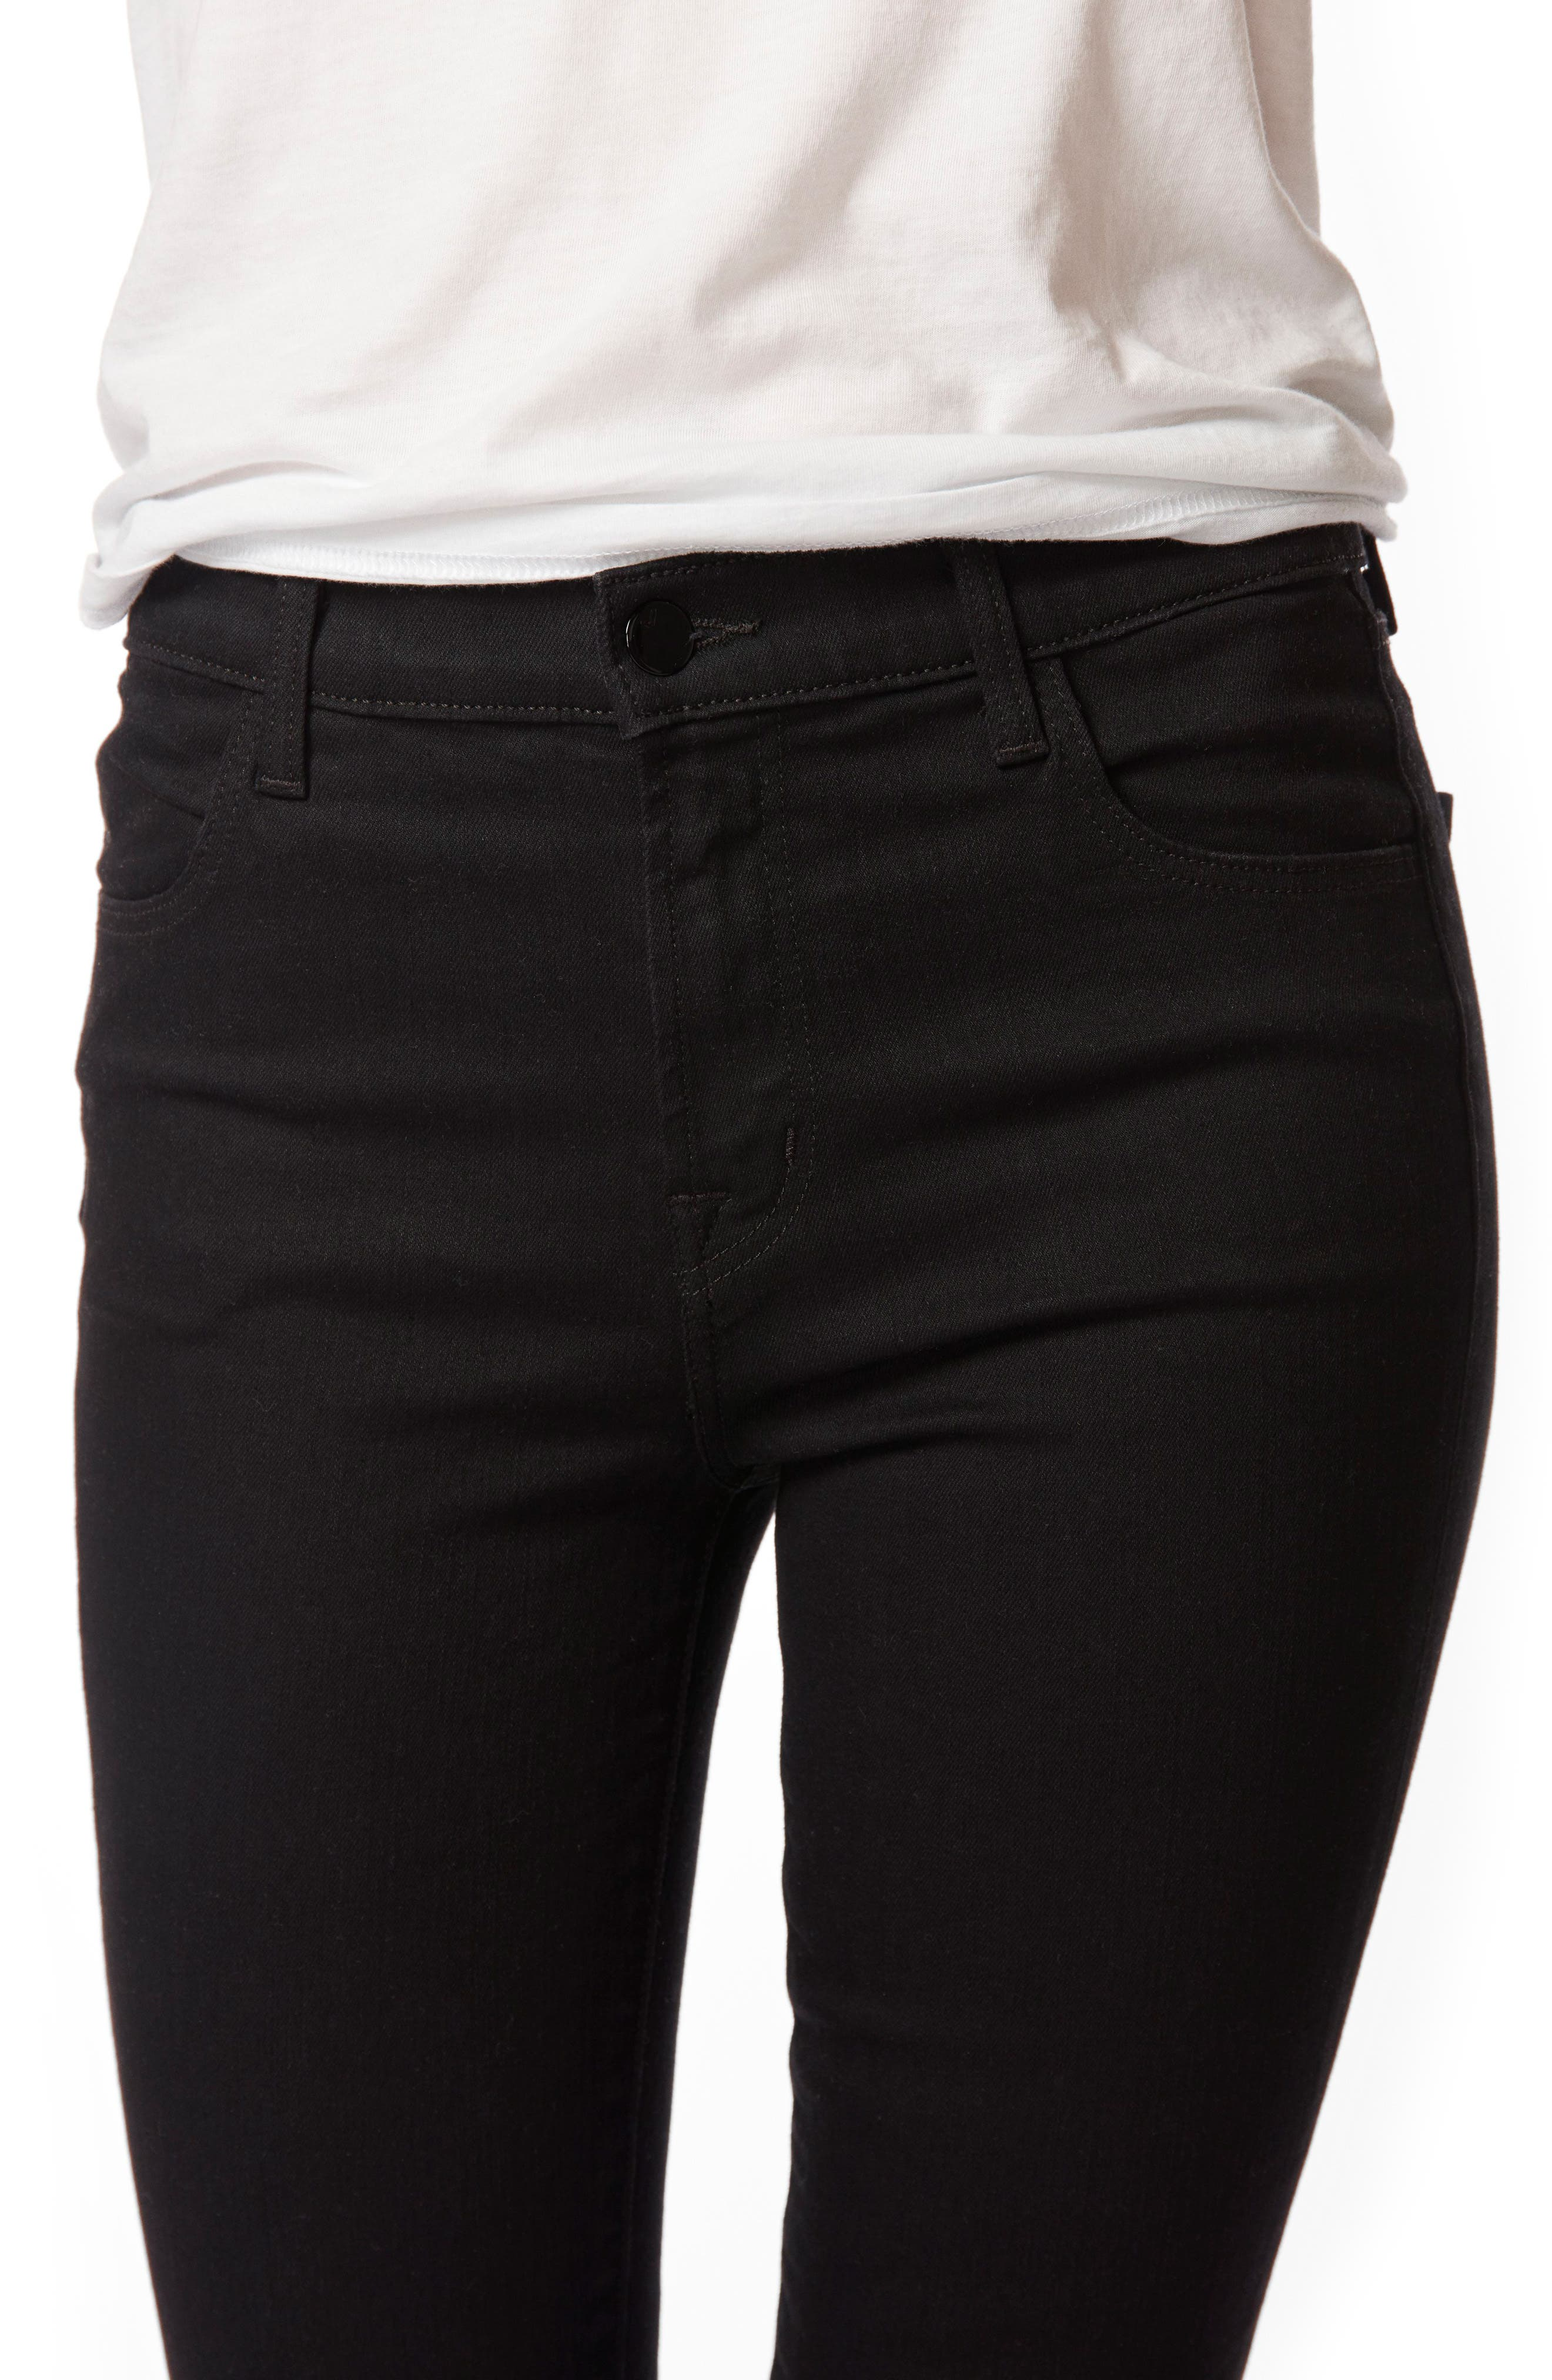 Alana High Waist Crop Skinny Jeans,                             Alternate thumbnail 4, color,                             Photo Ready Vanity